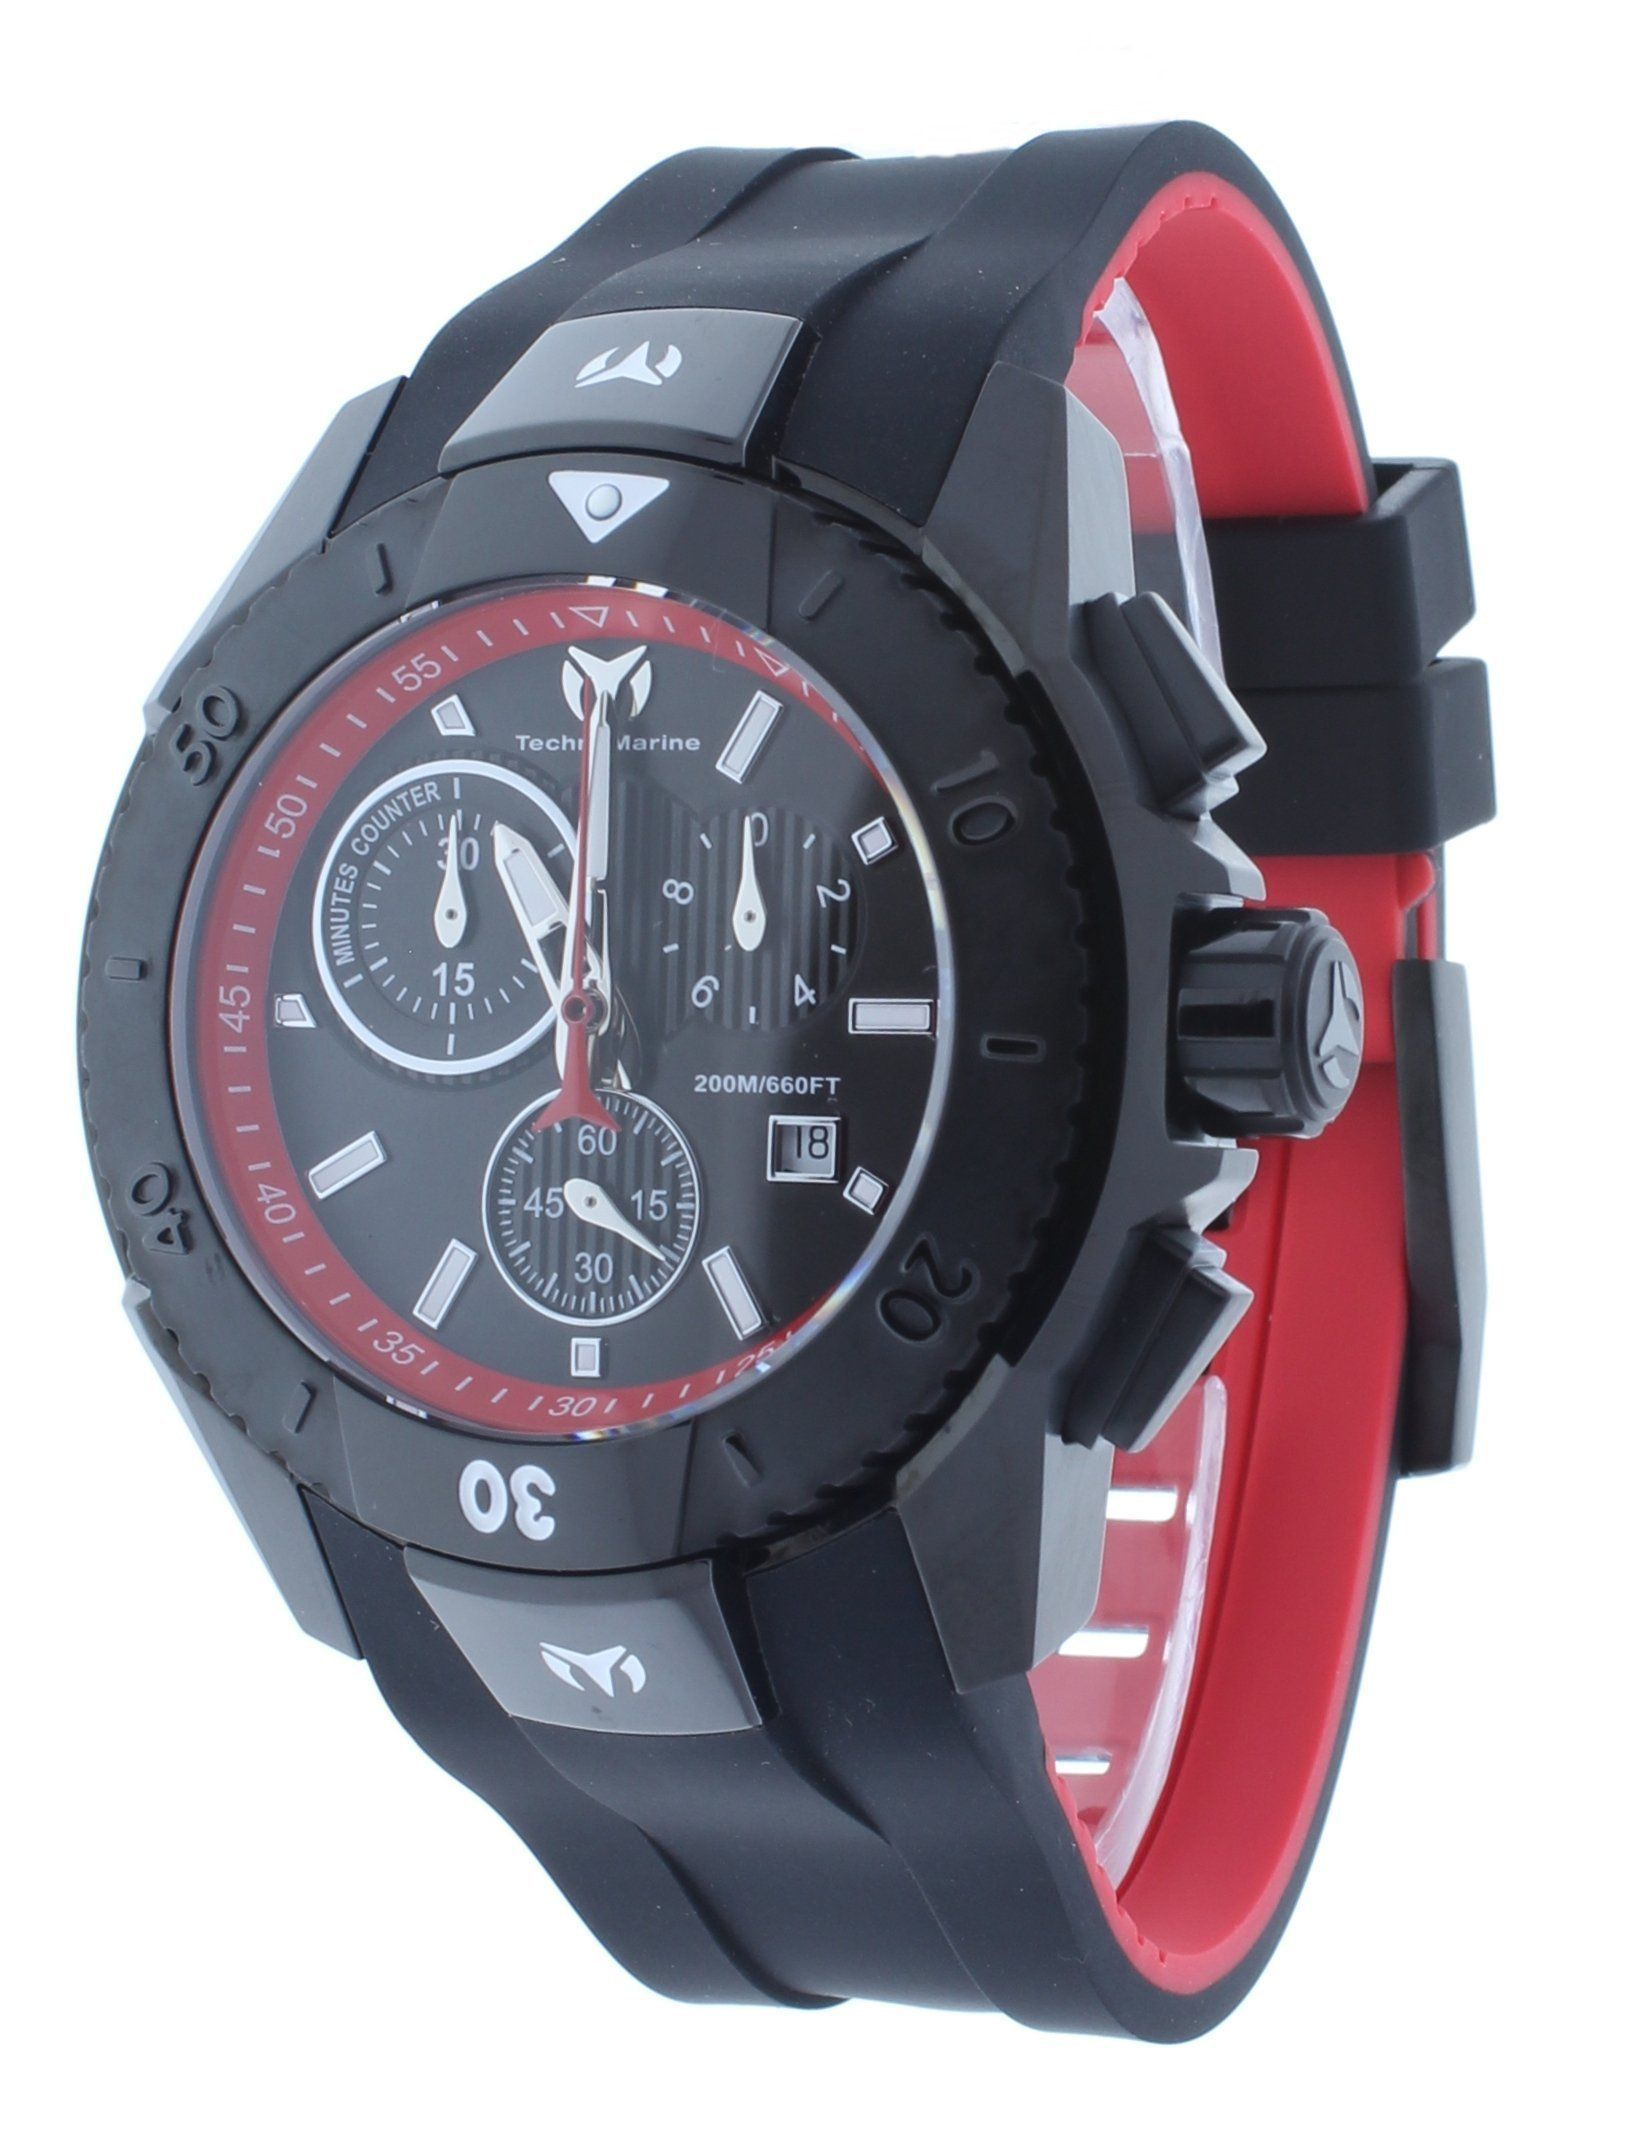 0ea0fe9e1bea Technomarine TM-616002 Men s Watch UF6 Black Red Swiss Chronograph Black  Rubber Strap